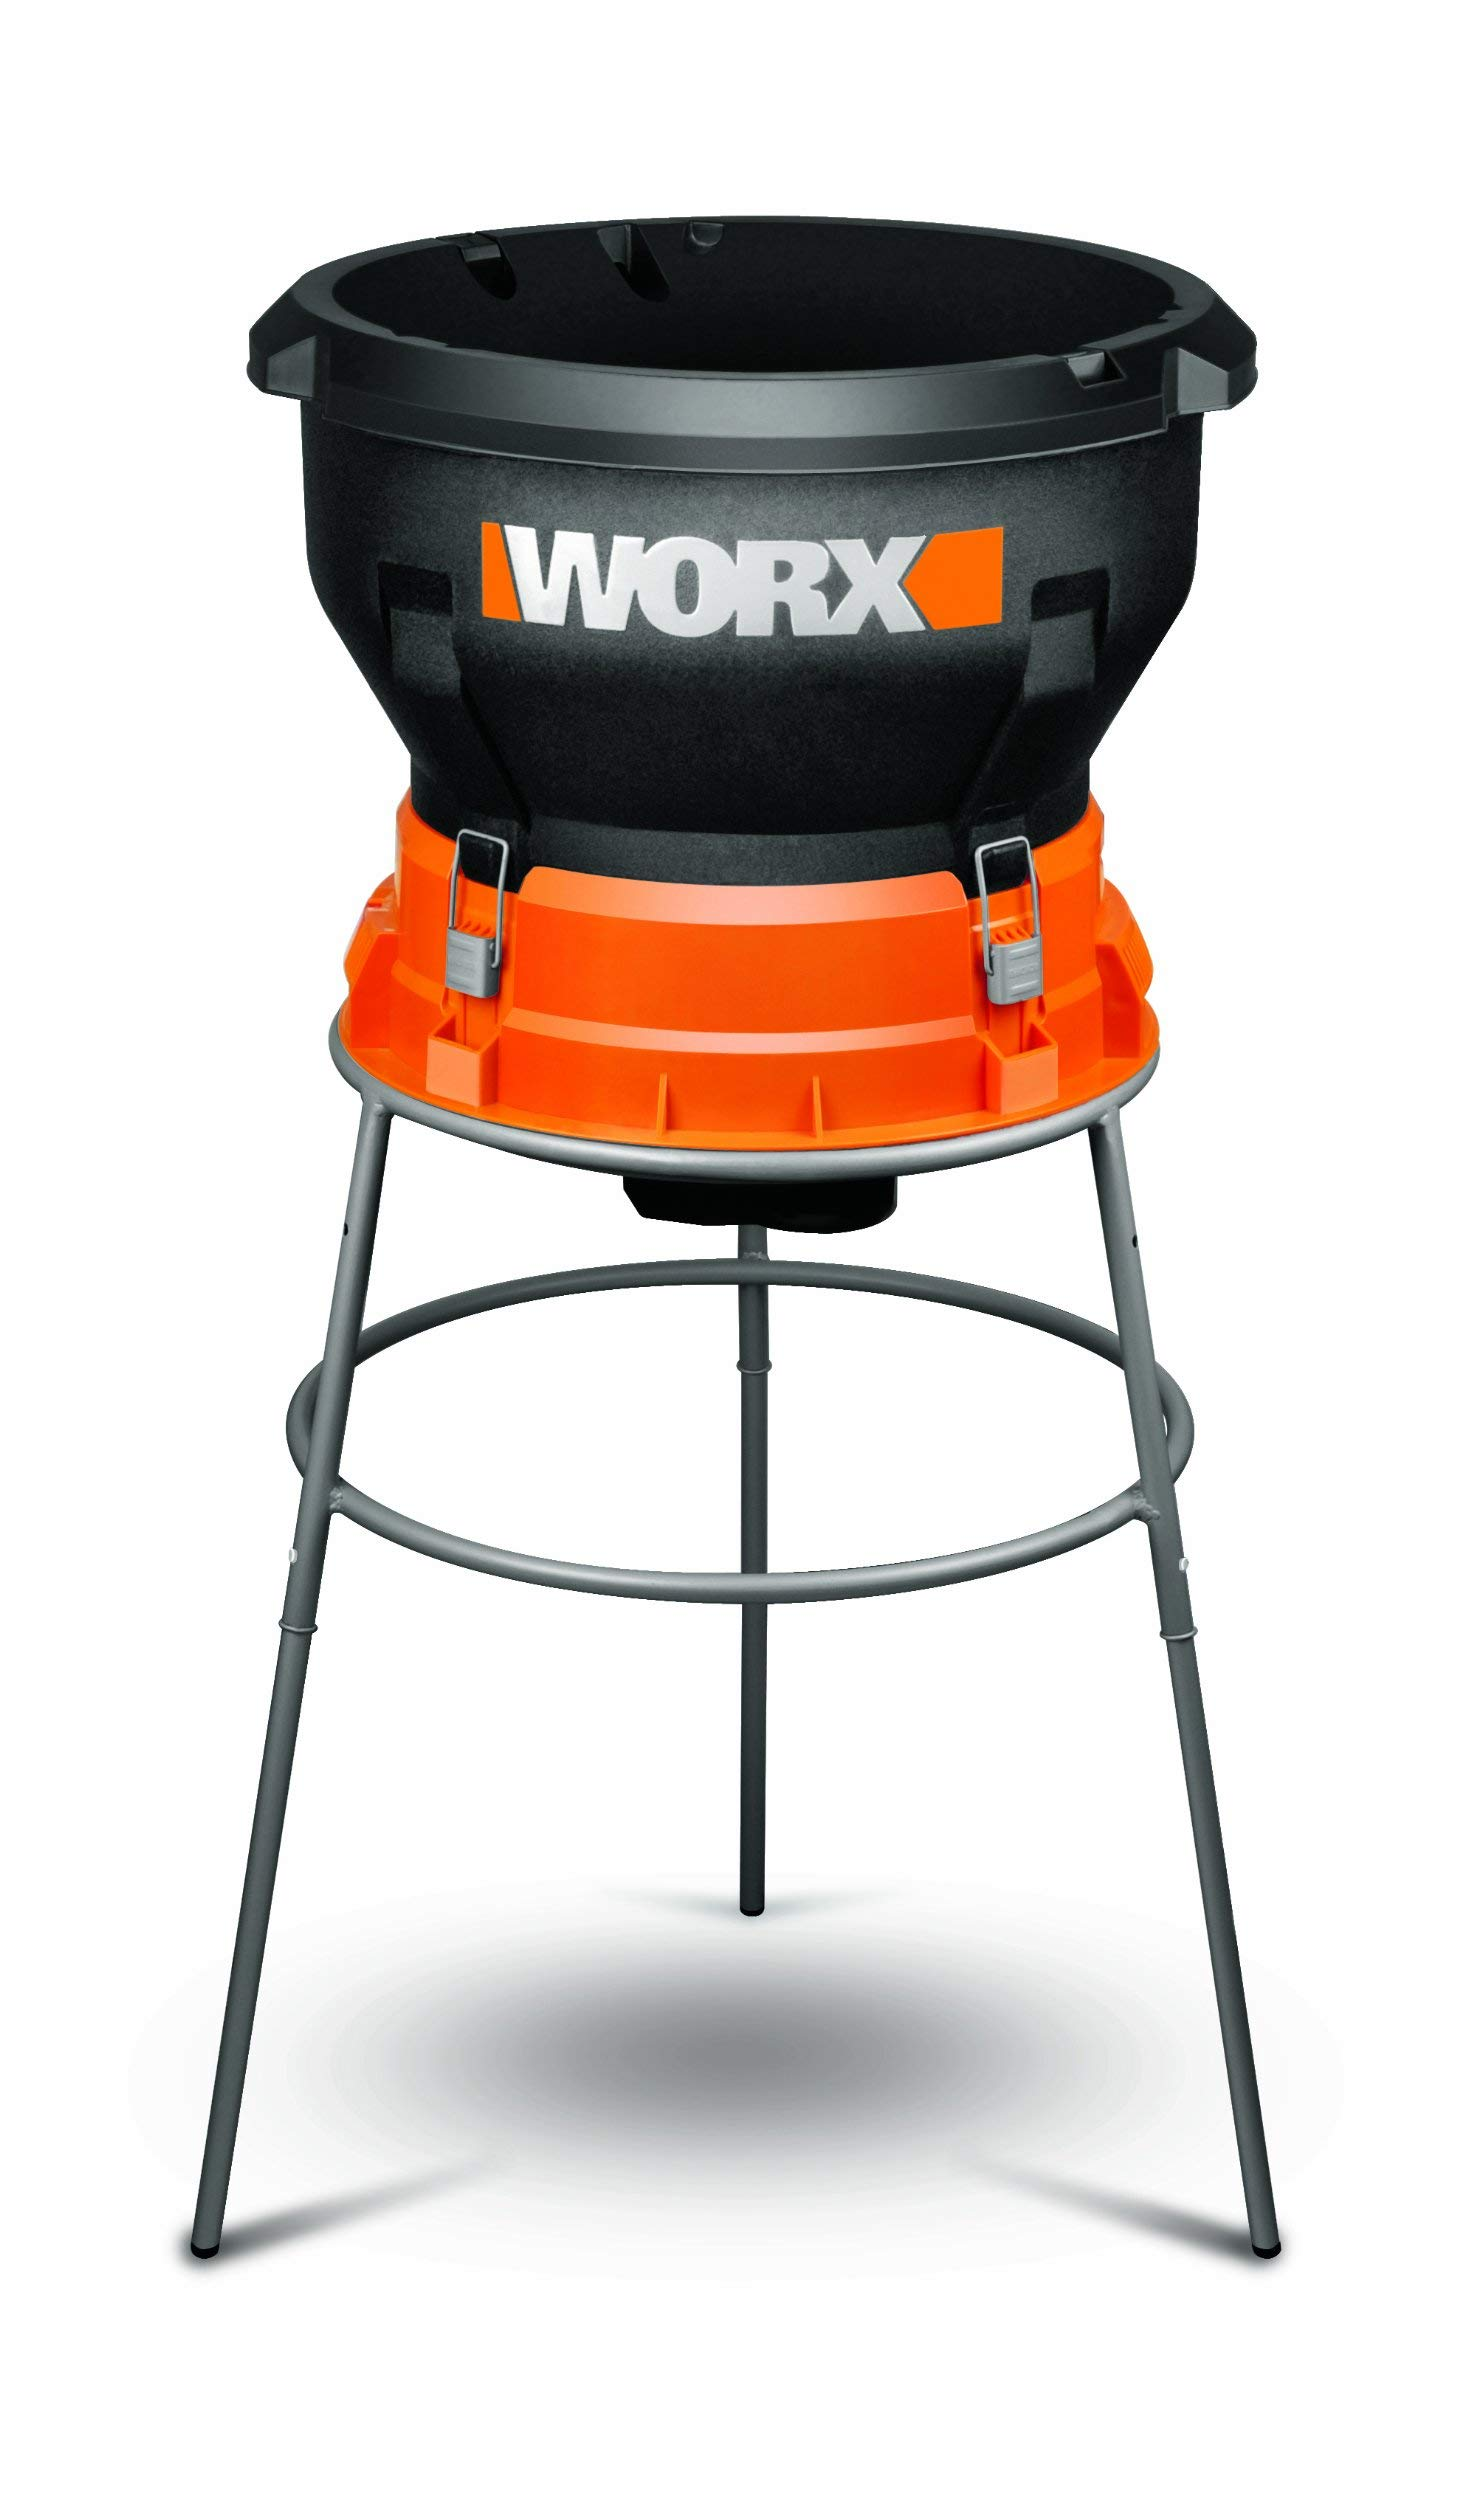 WORX Foldable Bladeless Electric Mulcher